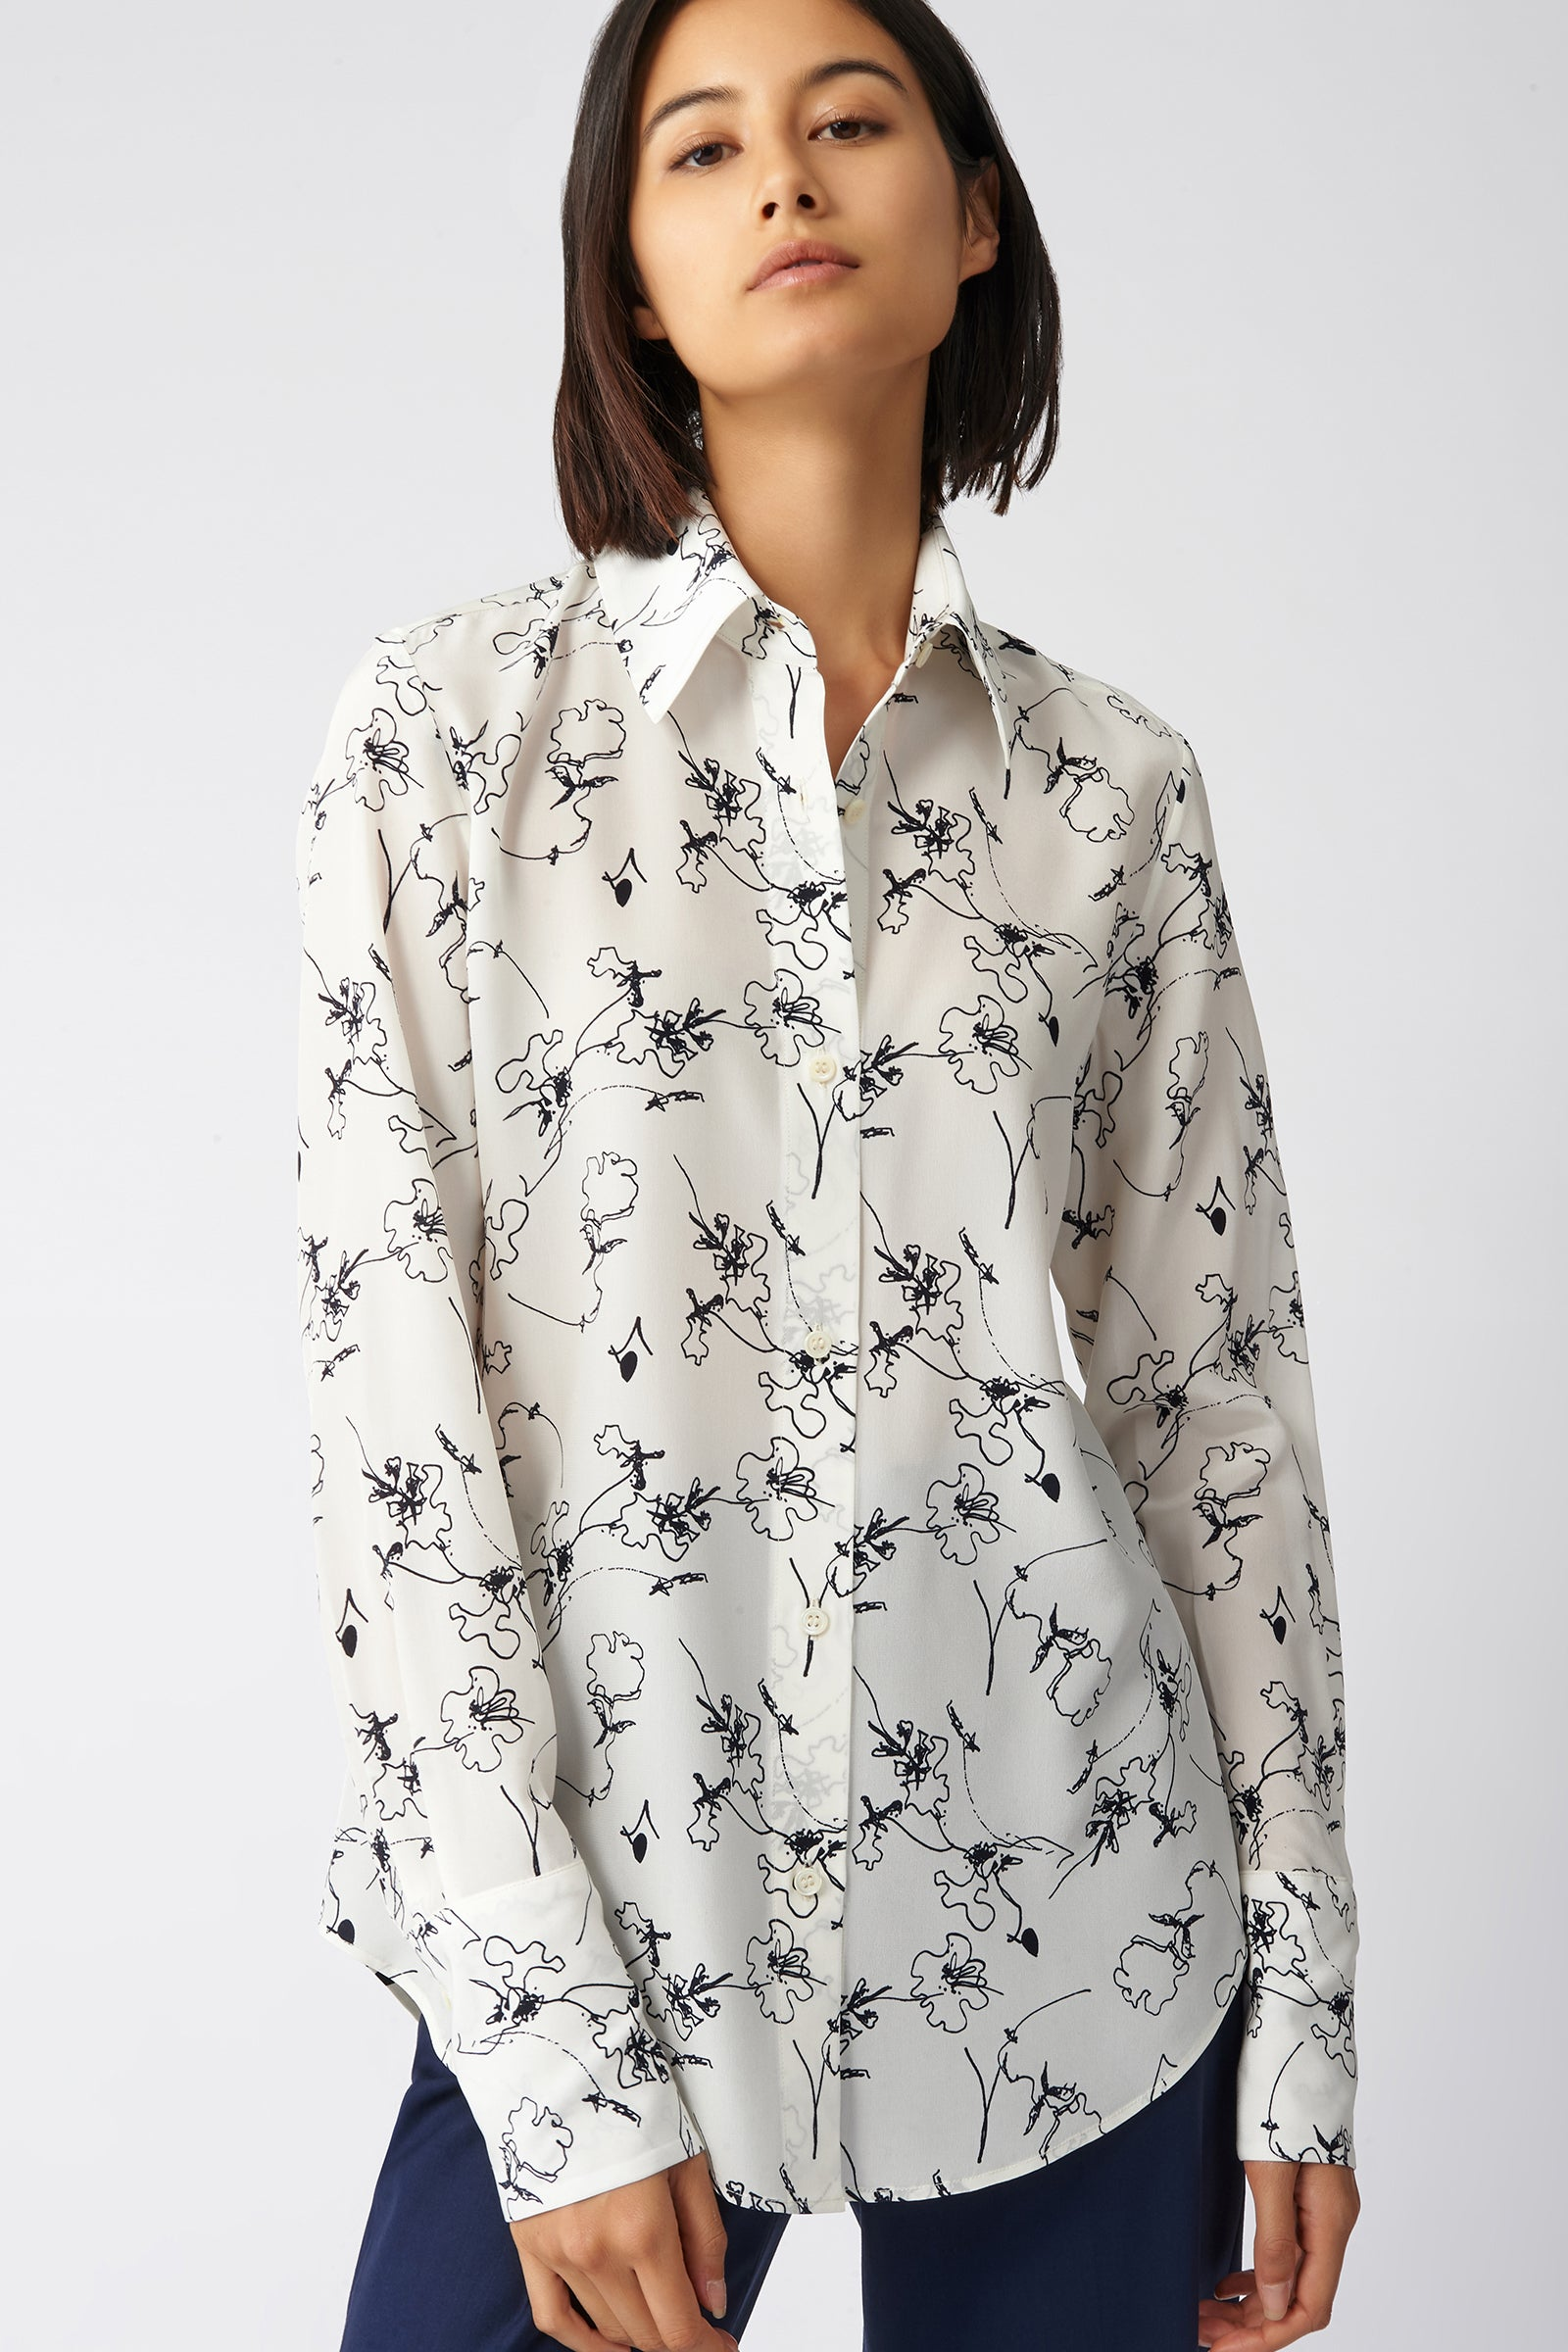 Kal Rieman Classic Tailored Blouse in Navy Floral on Model Front View